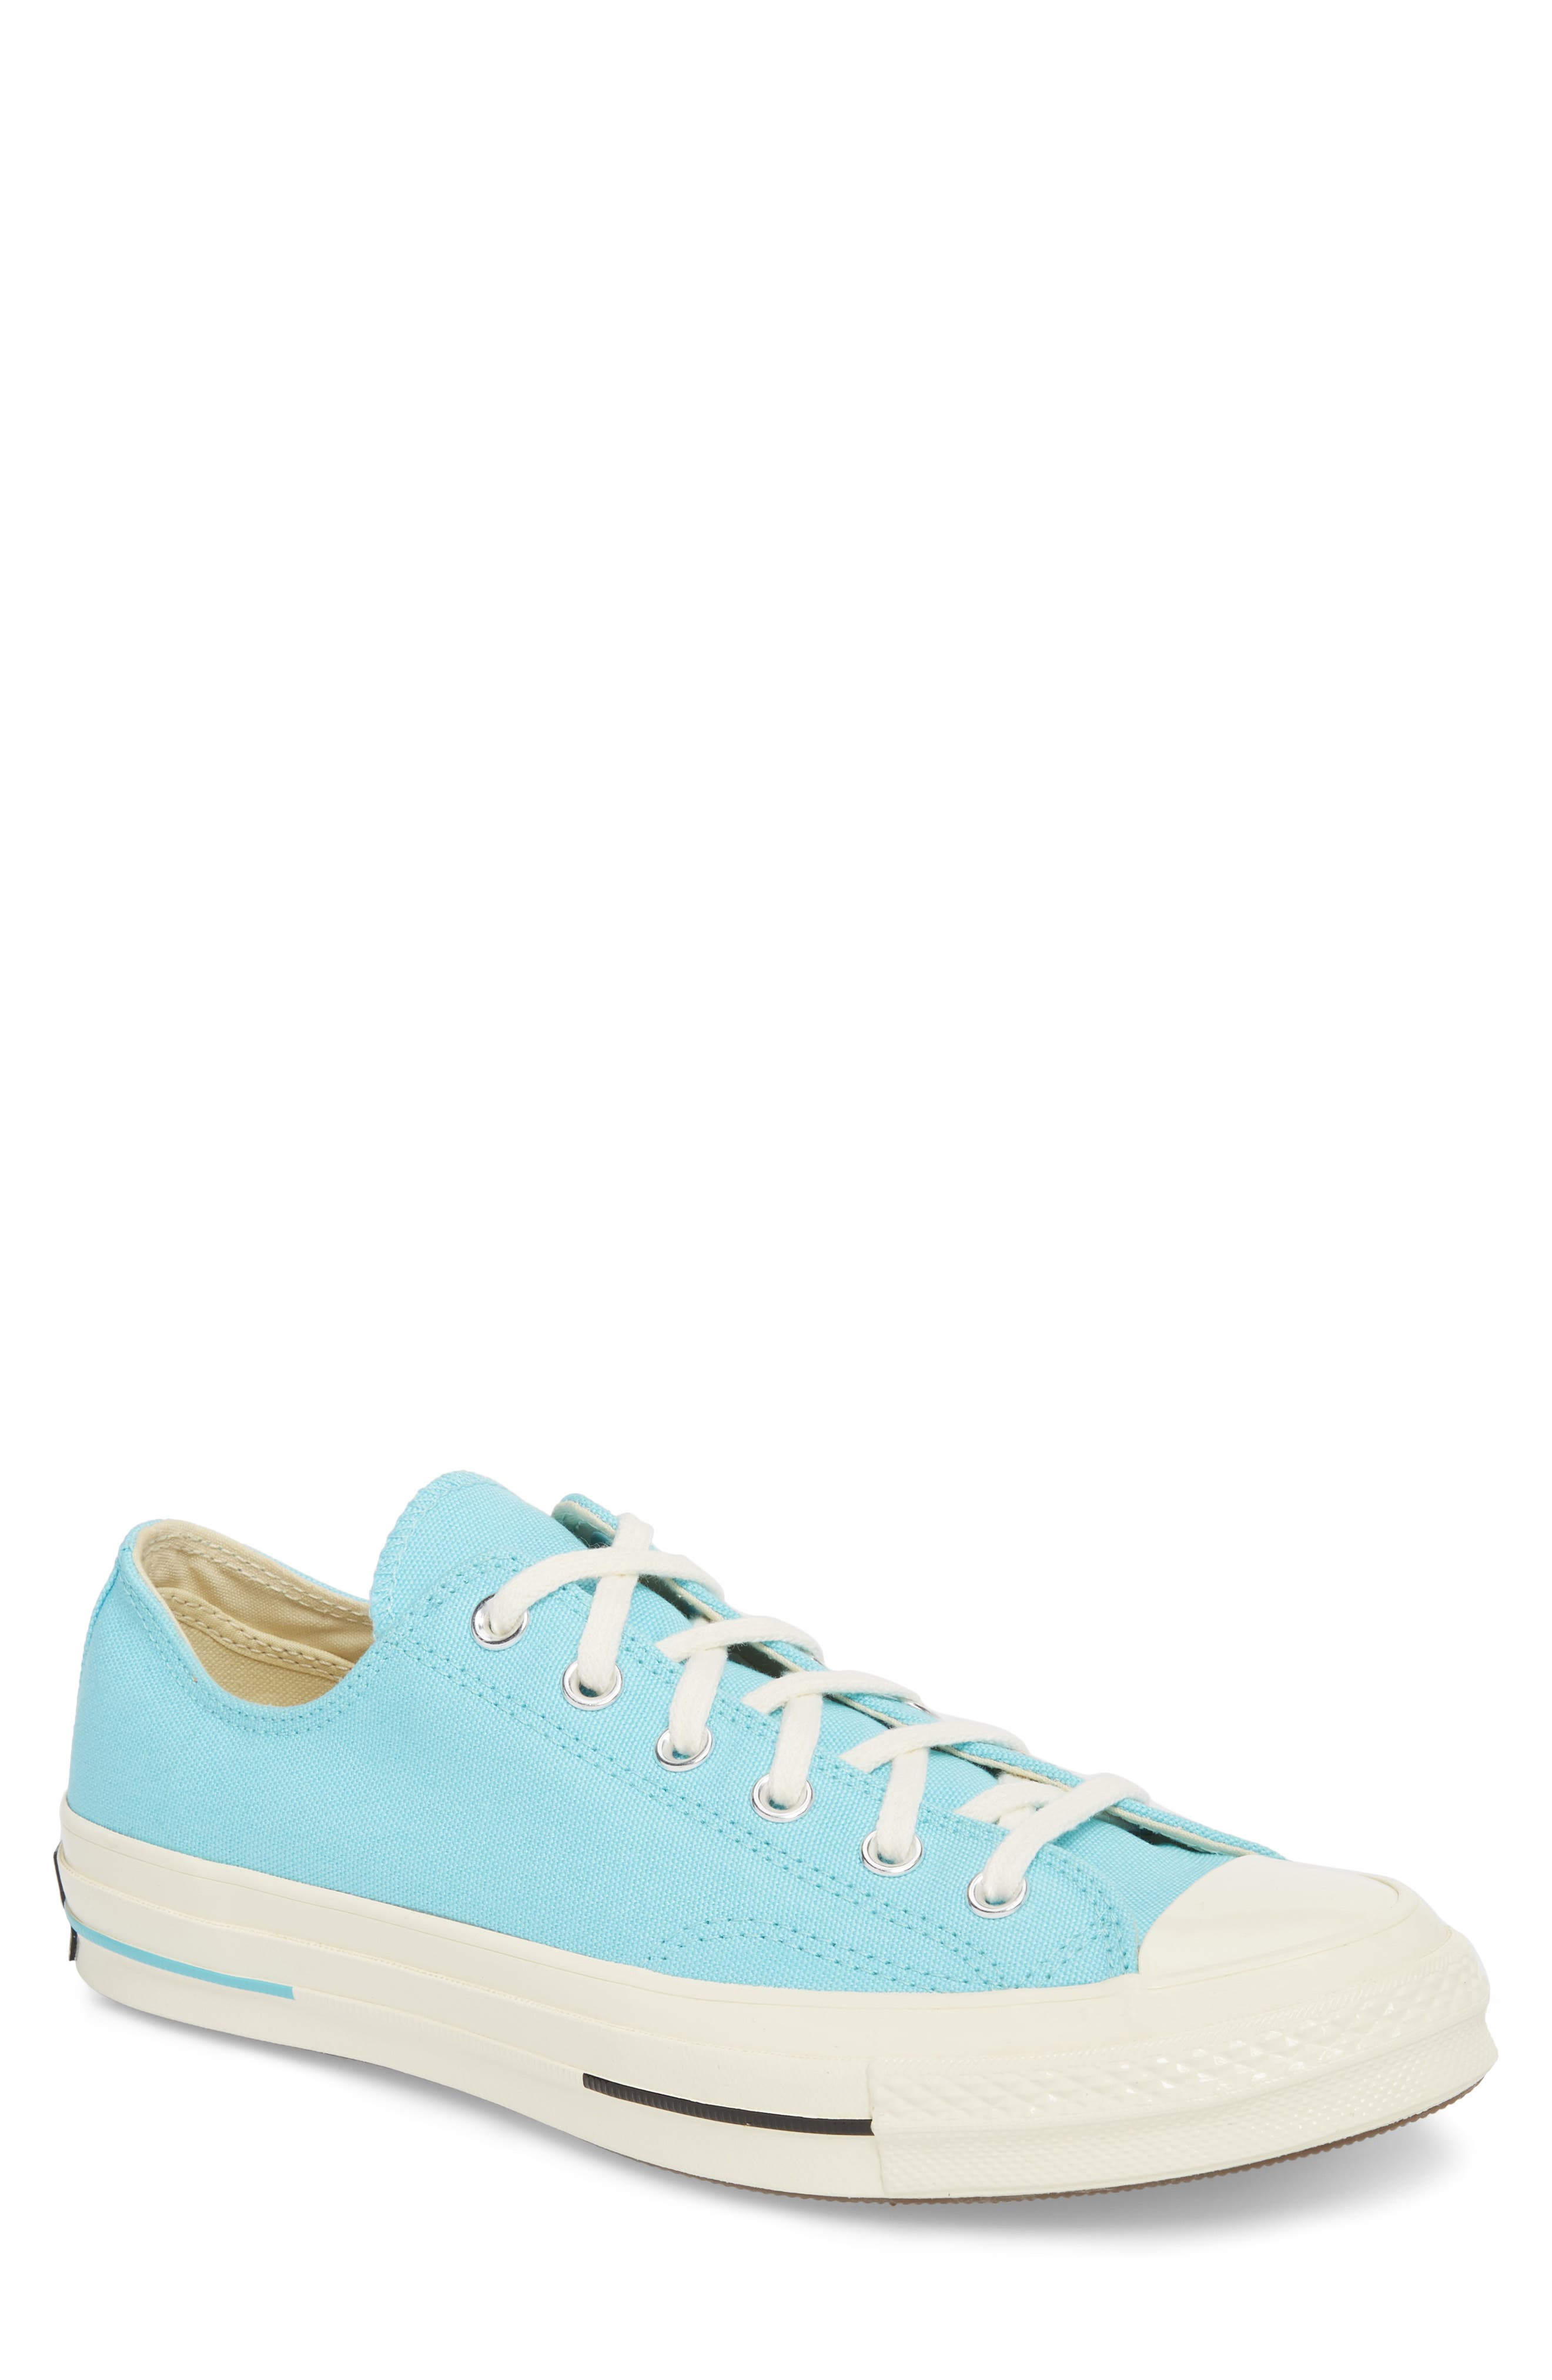 Chuck Taylor<sup>®</sup> All Star<sup>®</sup> 70 Brights Low Top Sneaker,                             Main thumbnail 1, color,                             486